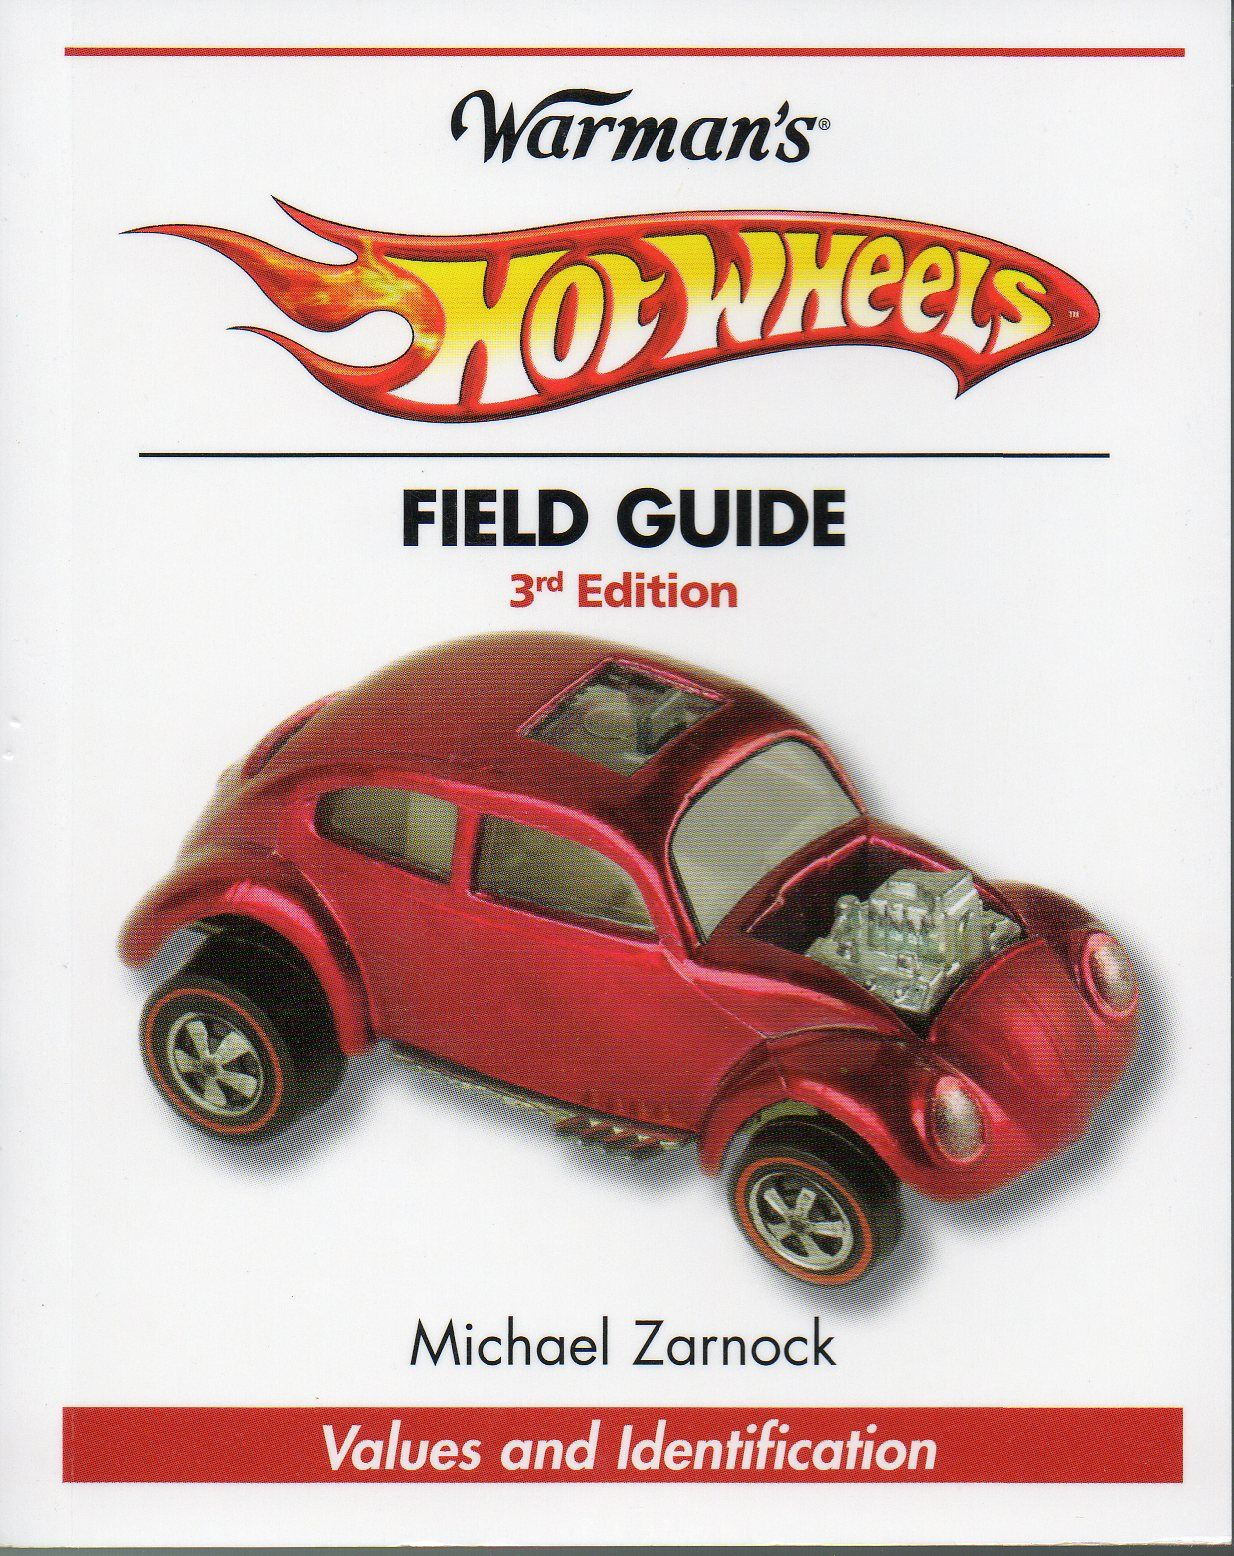 Warman's Hot Wheels Field Guide 3rd Edition  by Michael Zarnock - Purchase your autographed copy at http://www.MikeZarnock.com